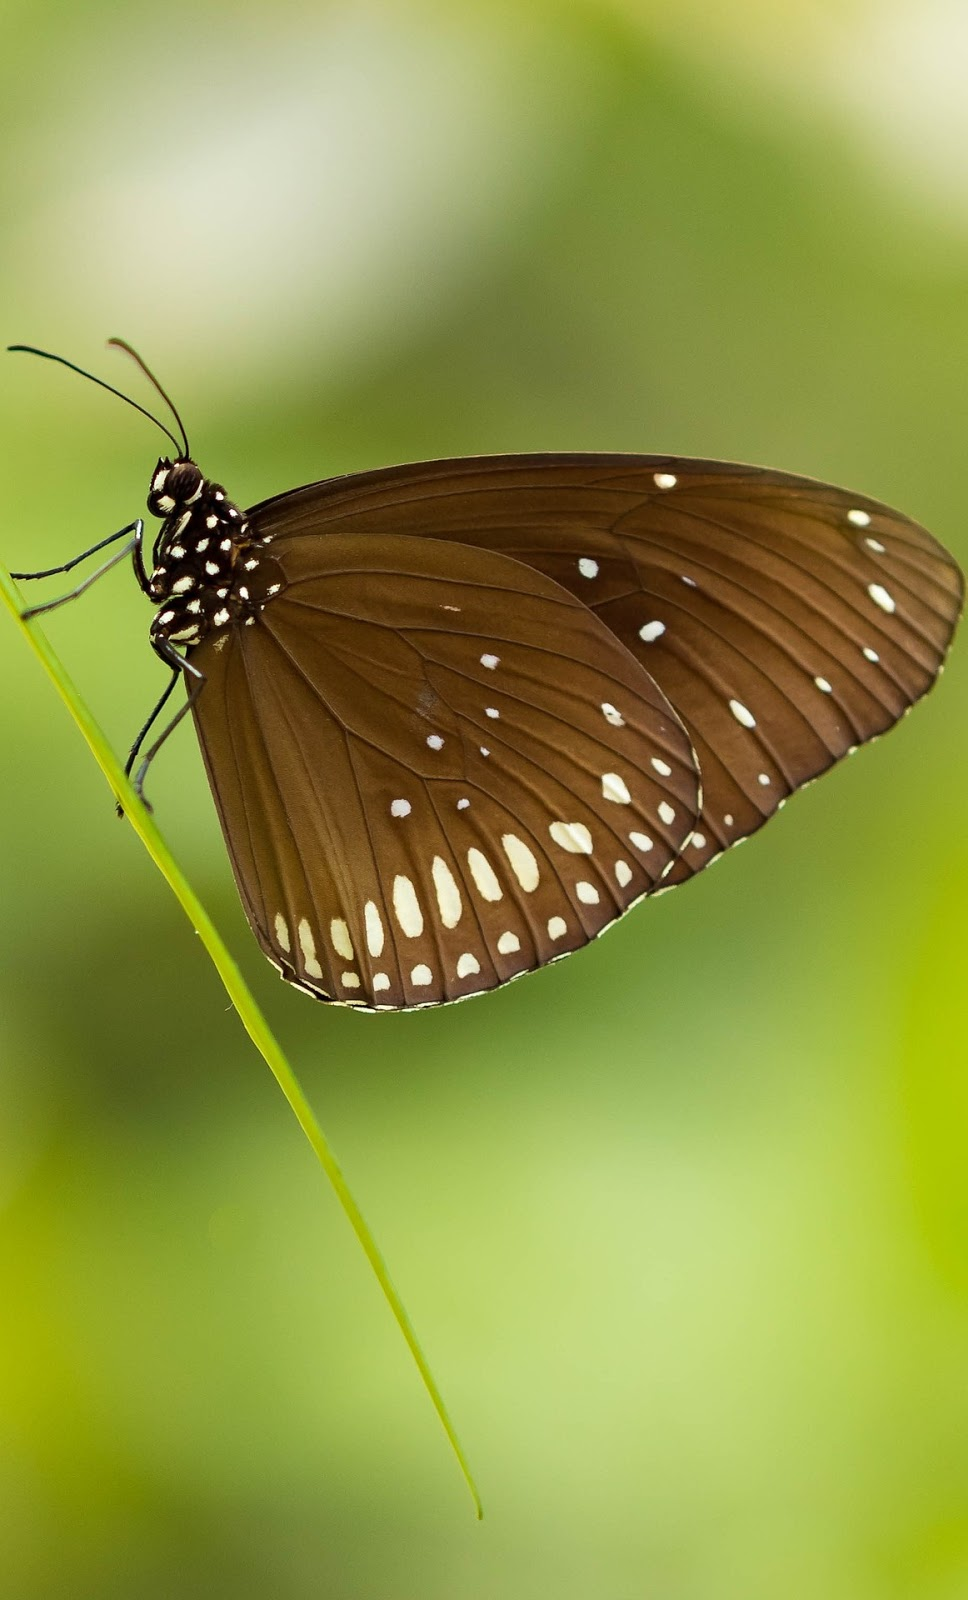 A brown butterfly.